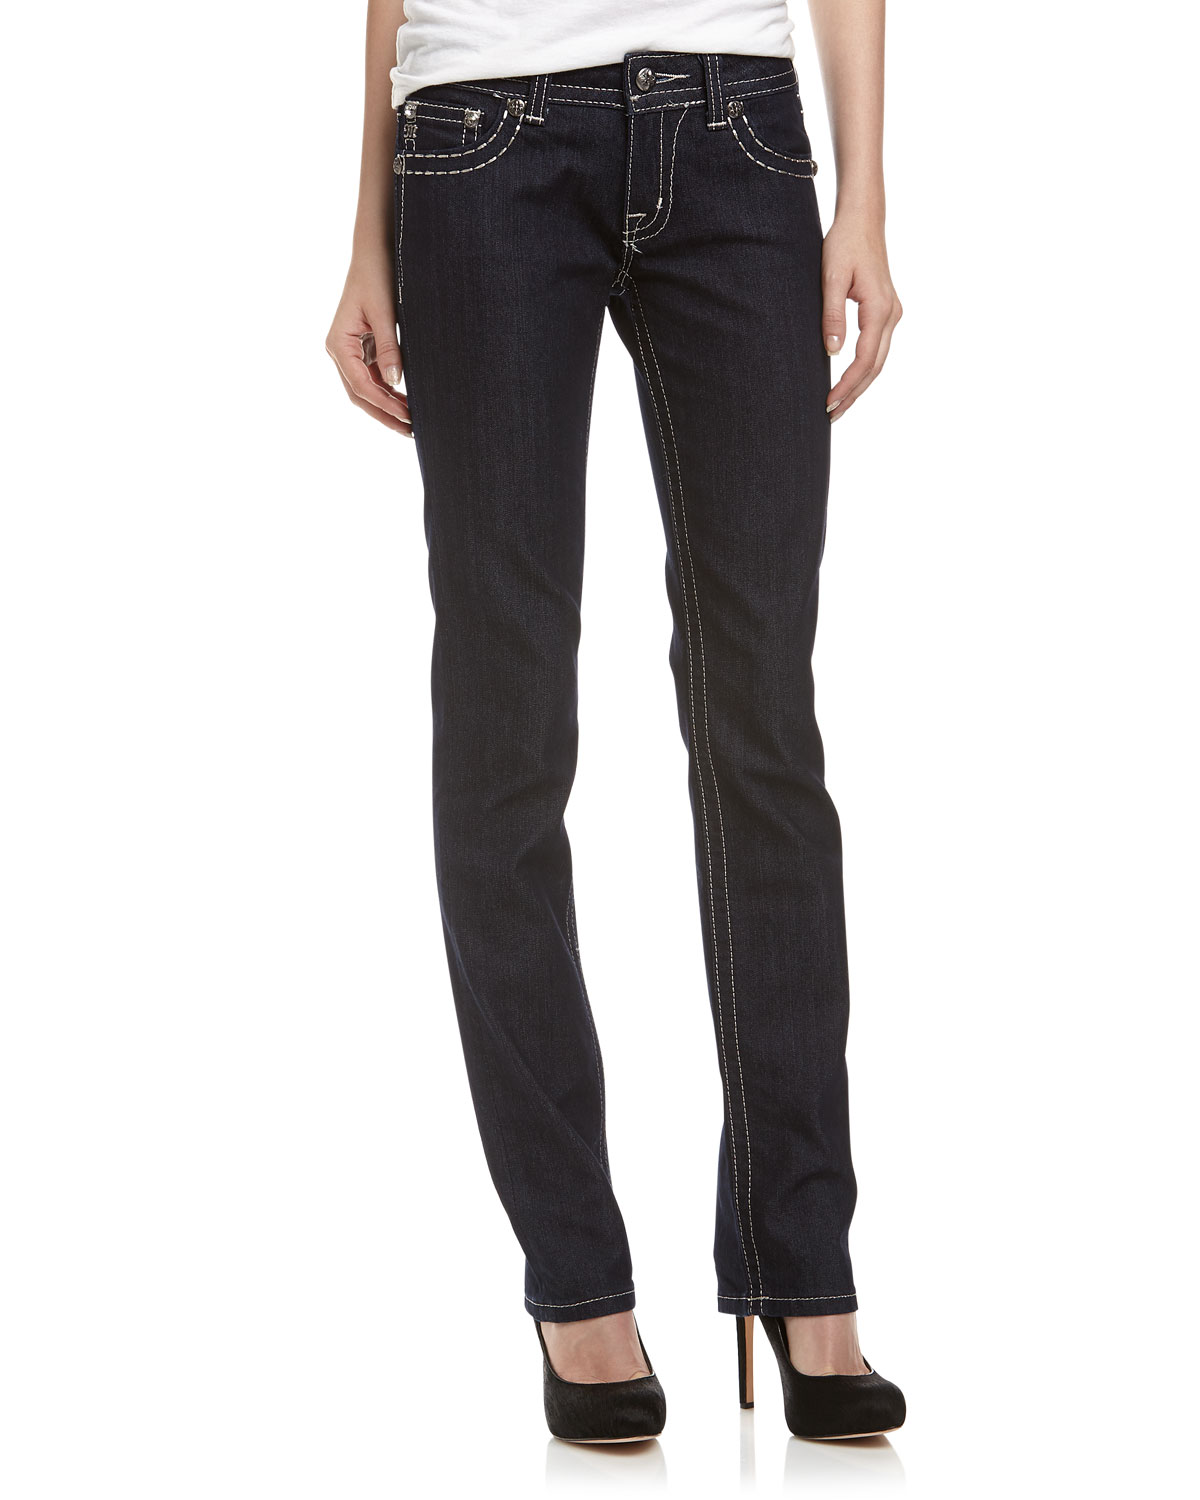 Shop All Fashion Premium Brands Women Men Kids Shoes Jewelry & Watches Bags & Accessories Premium Beauty Savings. Miss Me Juniors Jeans; Miss Me See All Women's Bottoms; Miss Me. Miss Me Juniors Jeans. Showing 32 of 34 results that match your query. Search Product Result. Product - Miss Me Denim Jeans Womens Beads Boot cut Medium Wash.